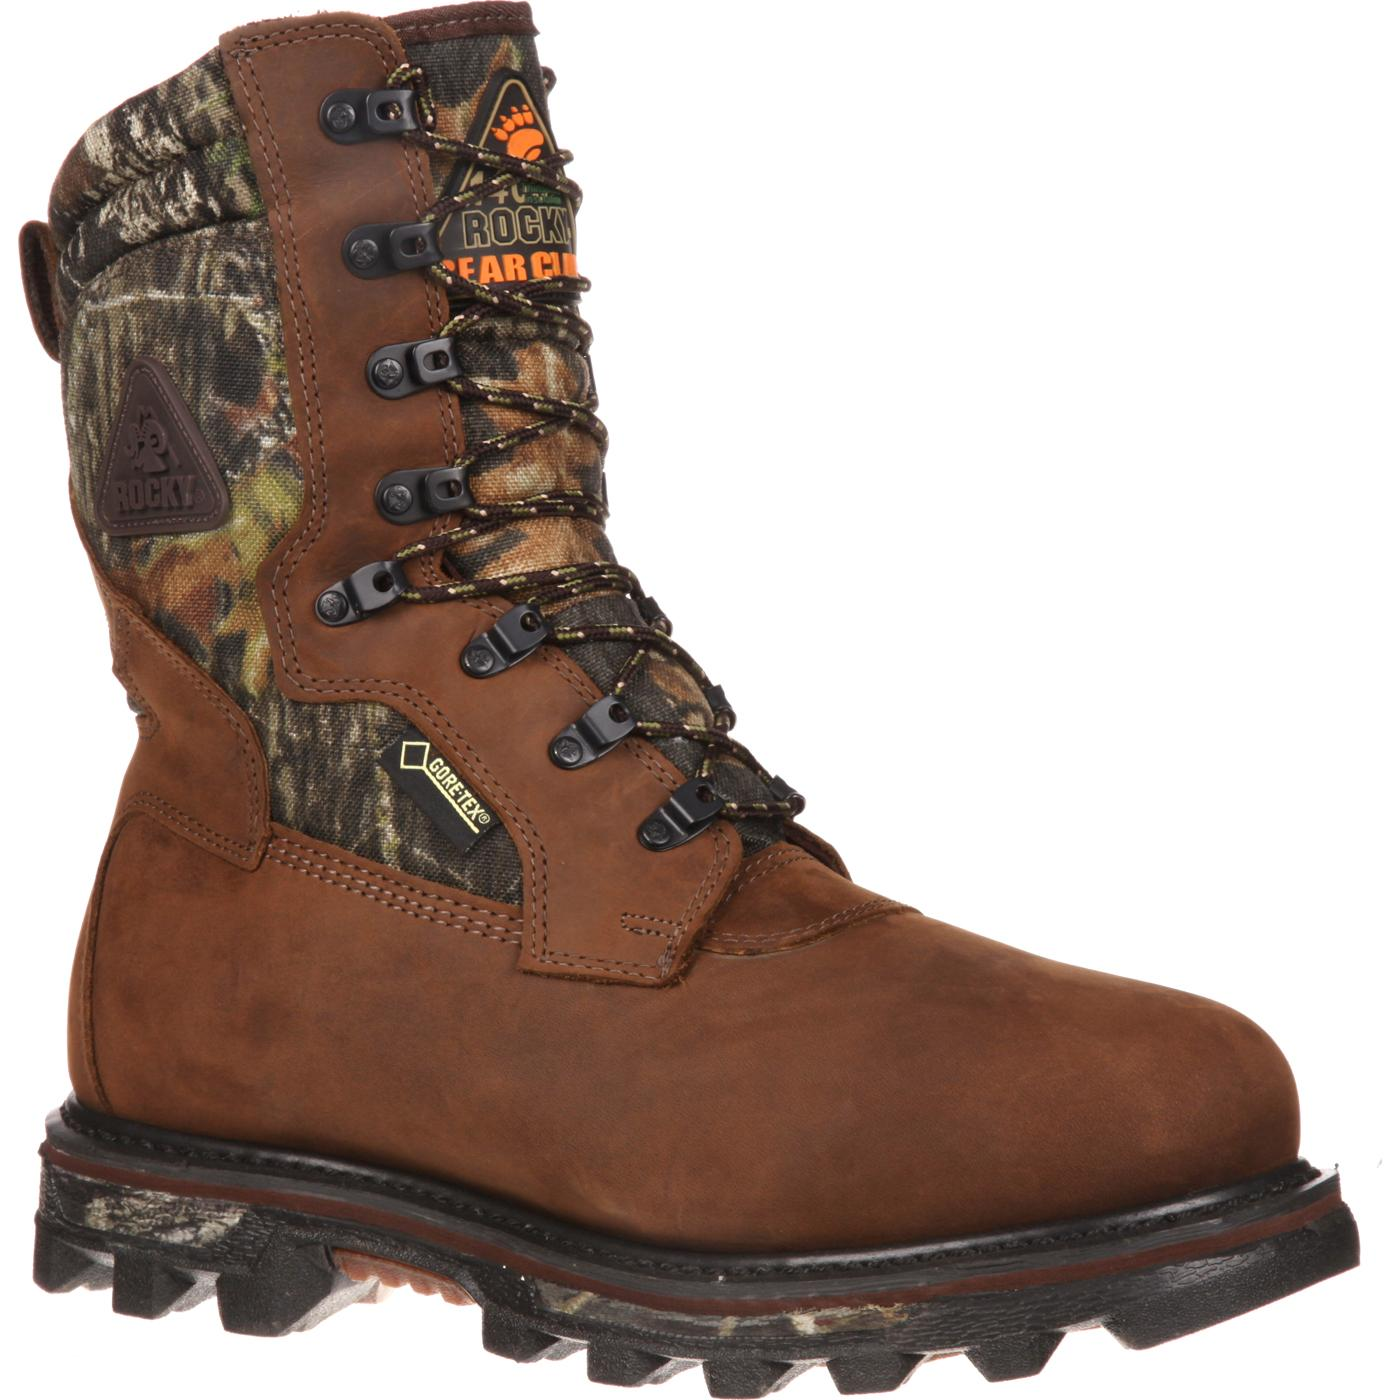 hunting boots rocky arctic bearclaw gore-tex® waterproof 1400g insulated outdoor boot, ,  large qejjiks